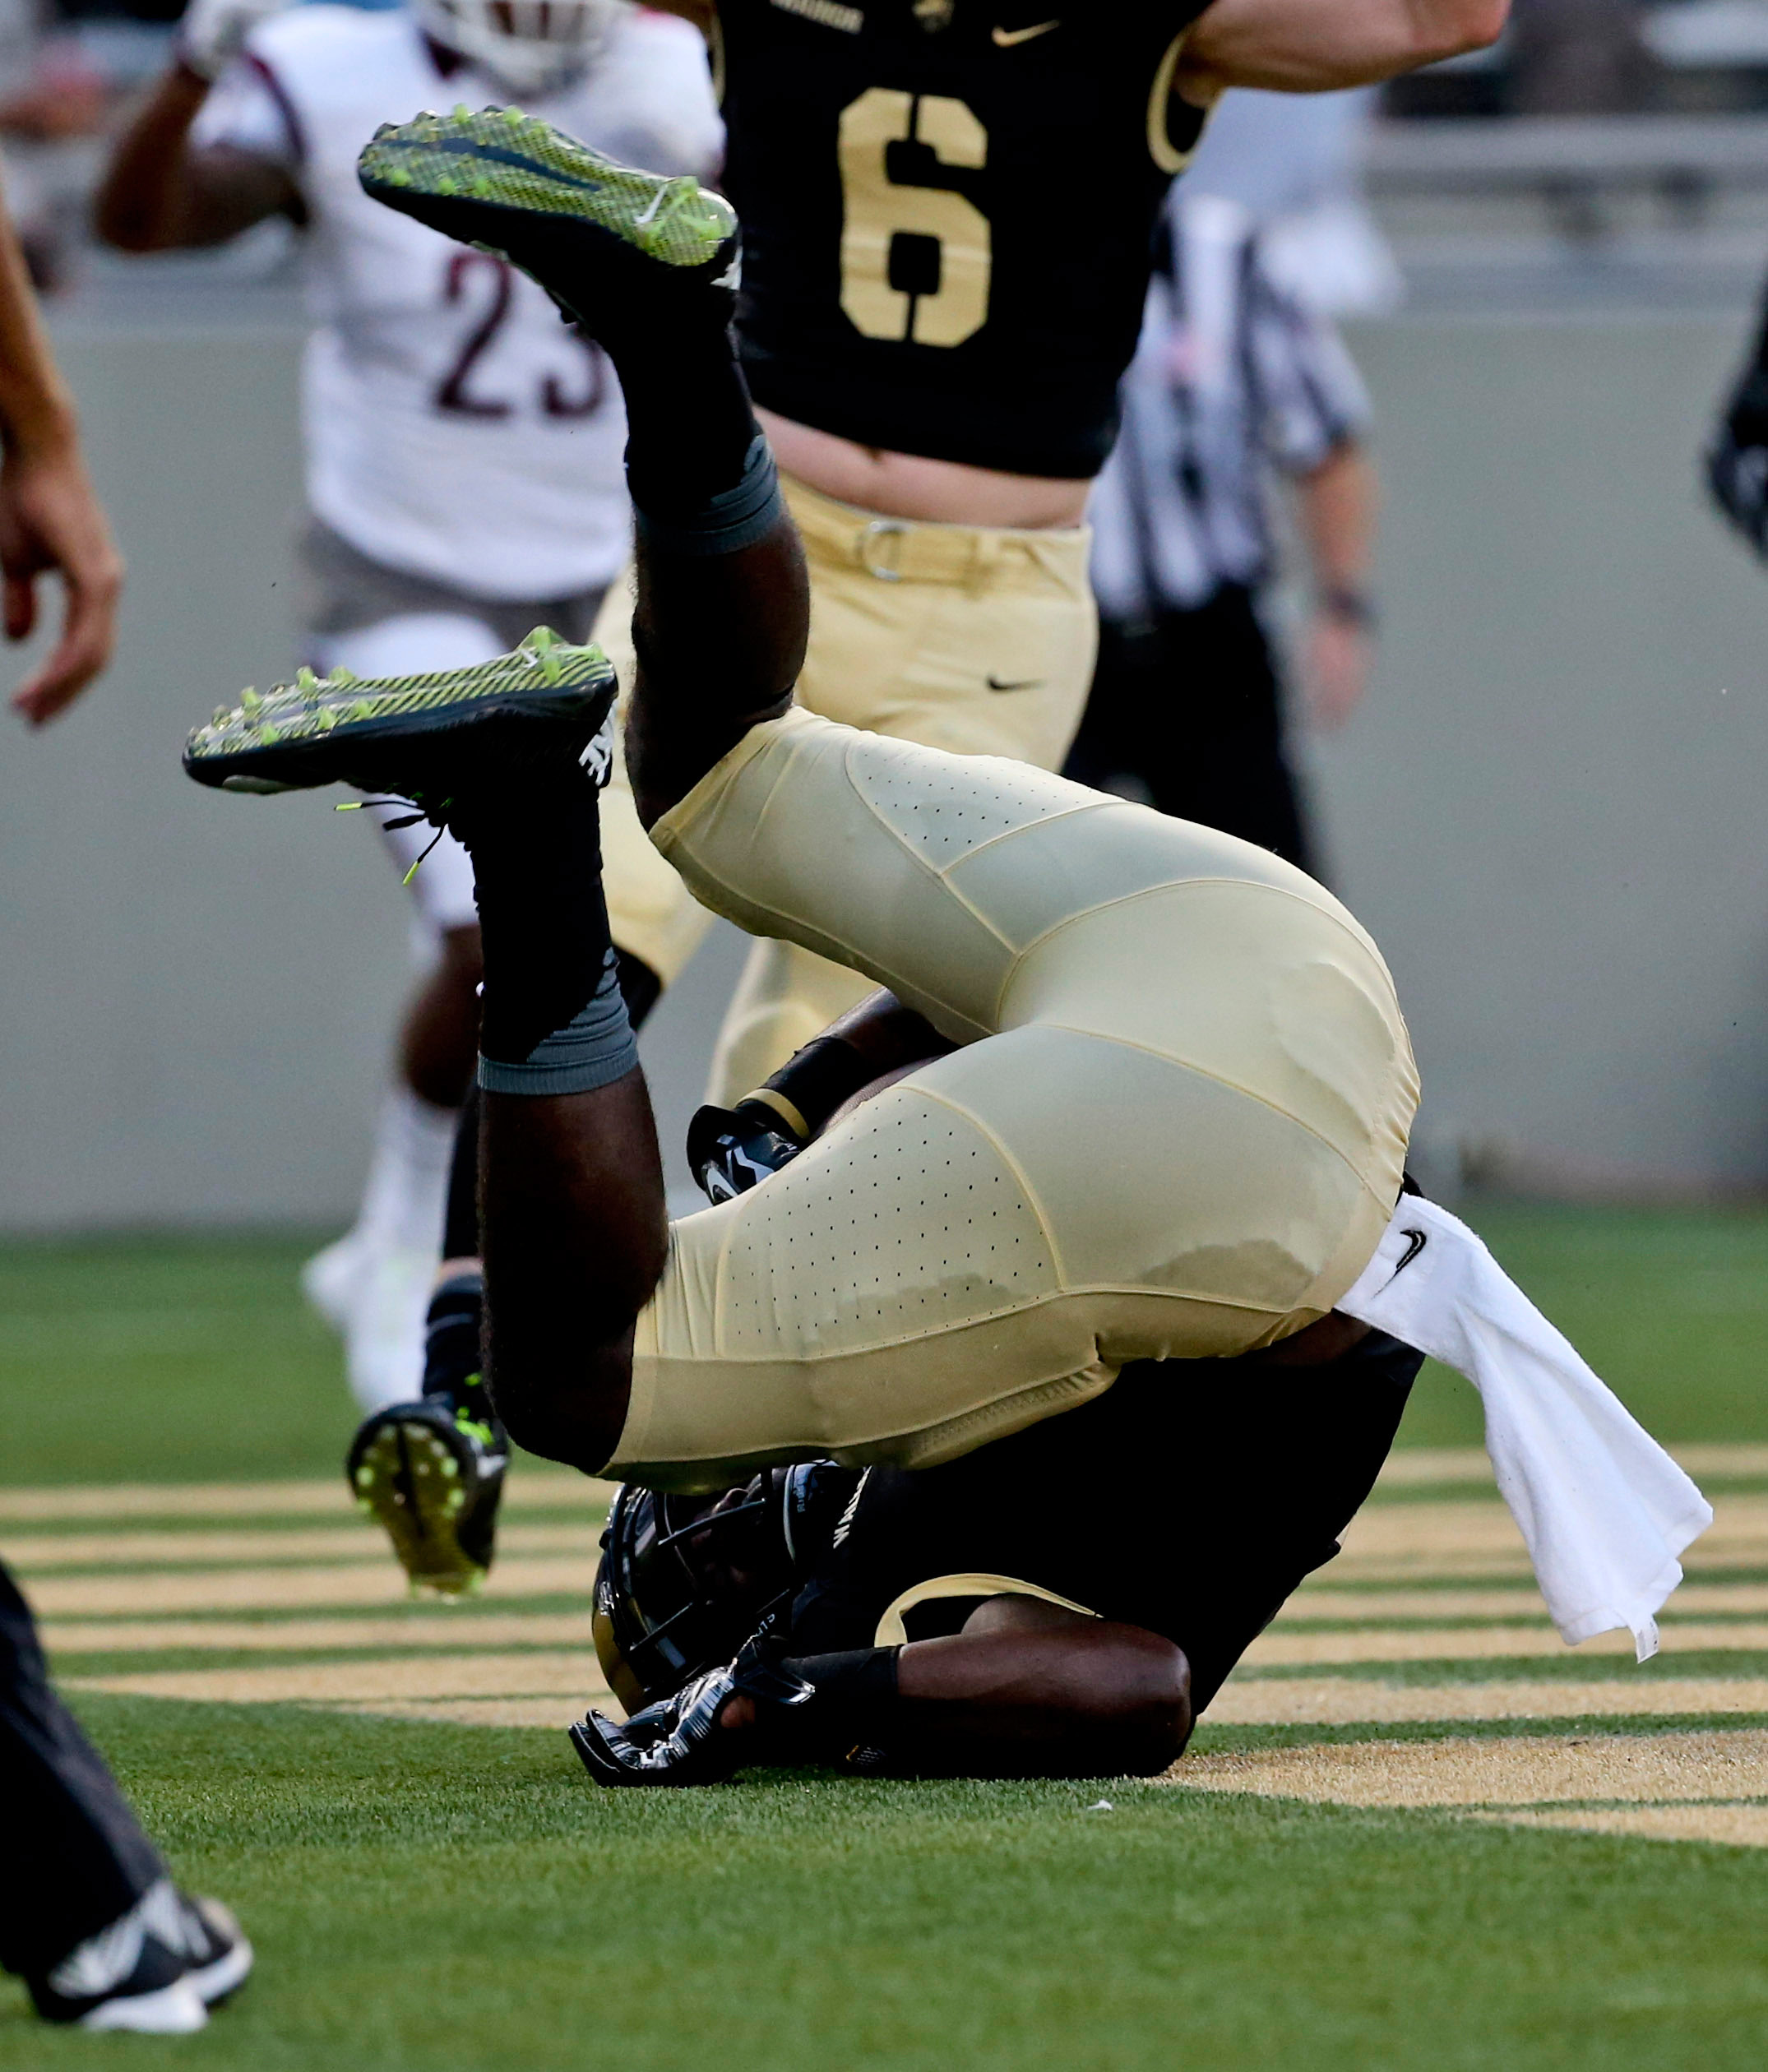 WEST POINT, N.Y. (AP) — Fordham turned a nightmare beginning into a